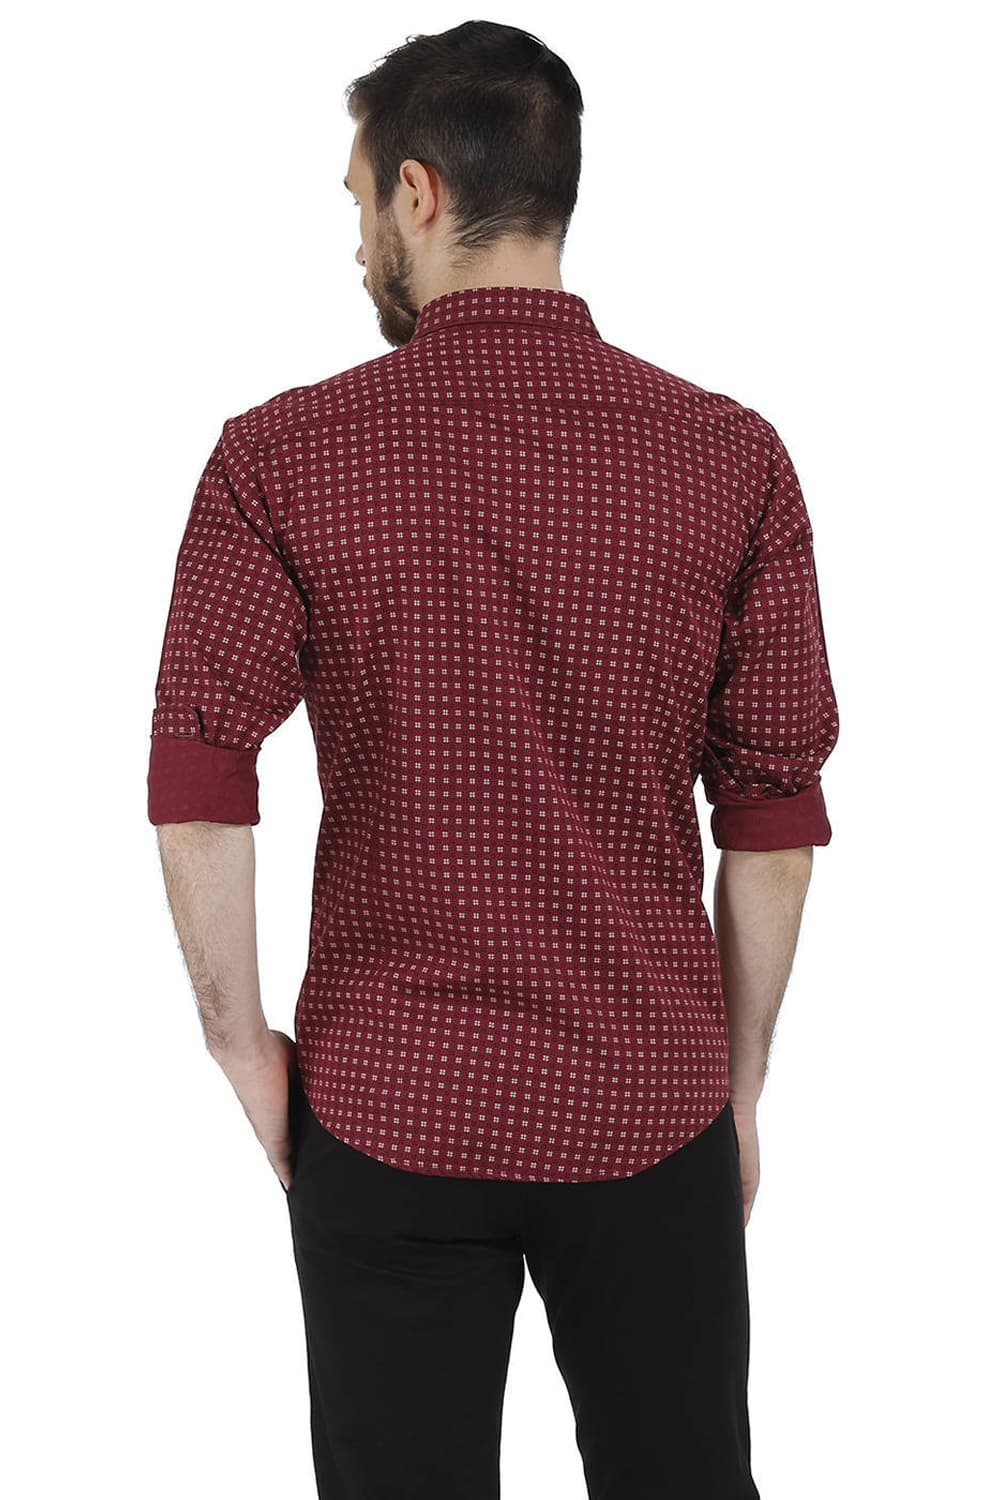 317b5c01e2 Basics Slim Fit Red Cordovan Red Printed Satin Shirt-16bsh35302